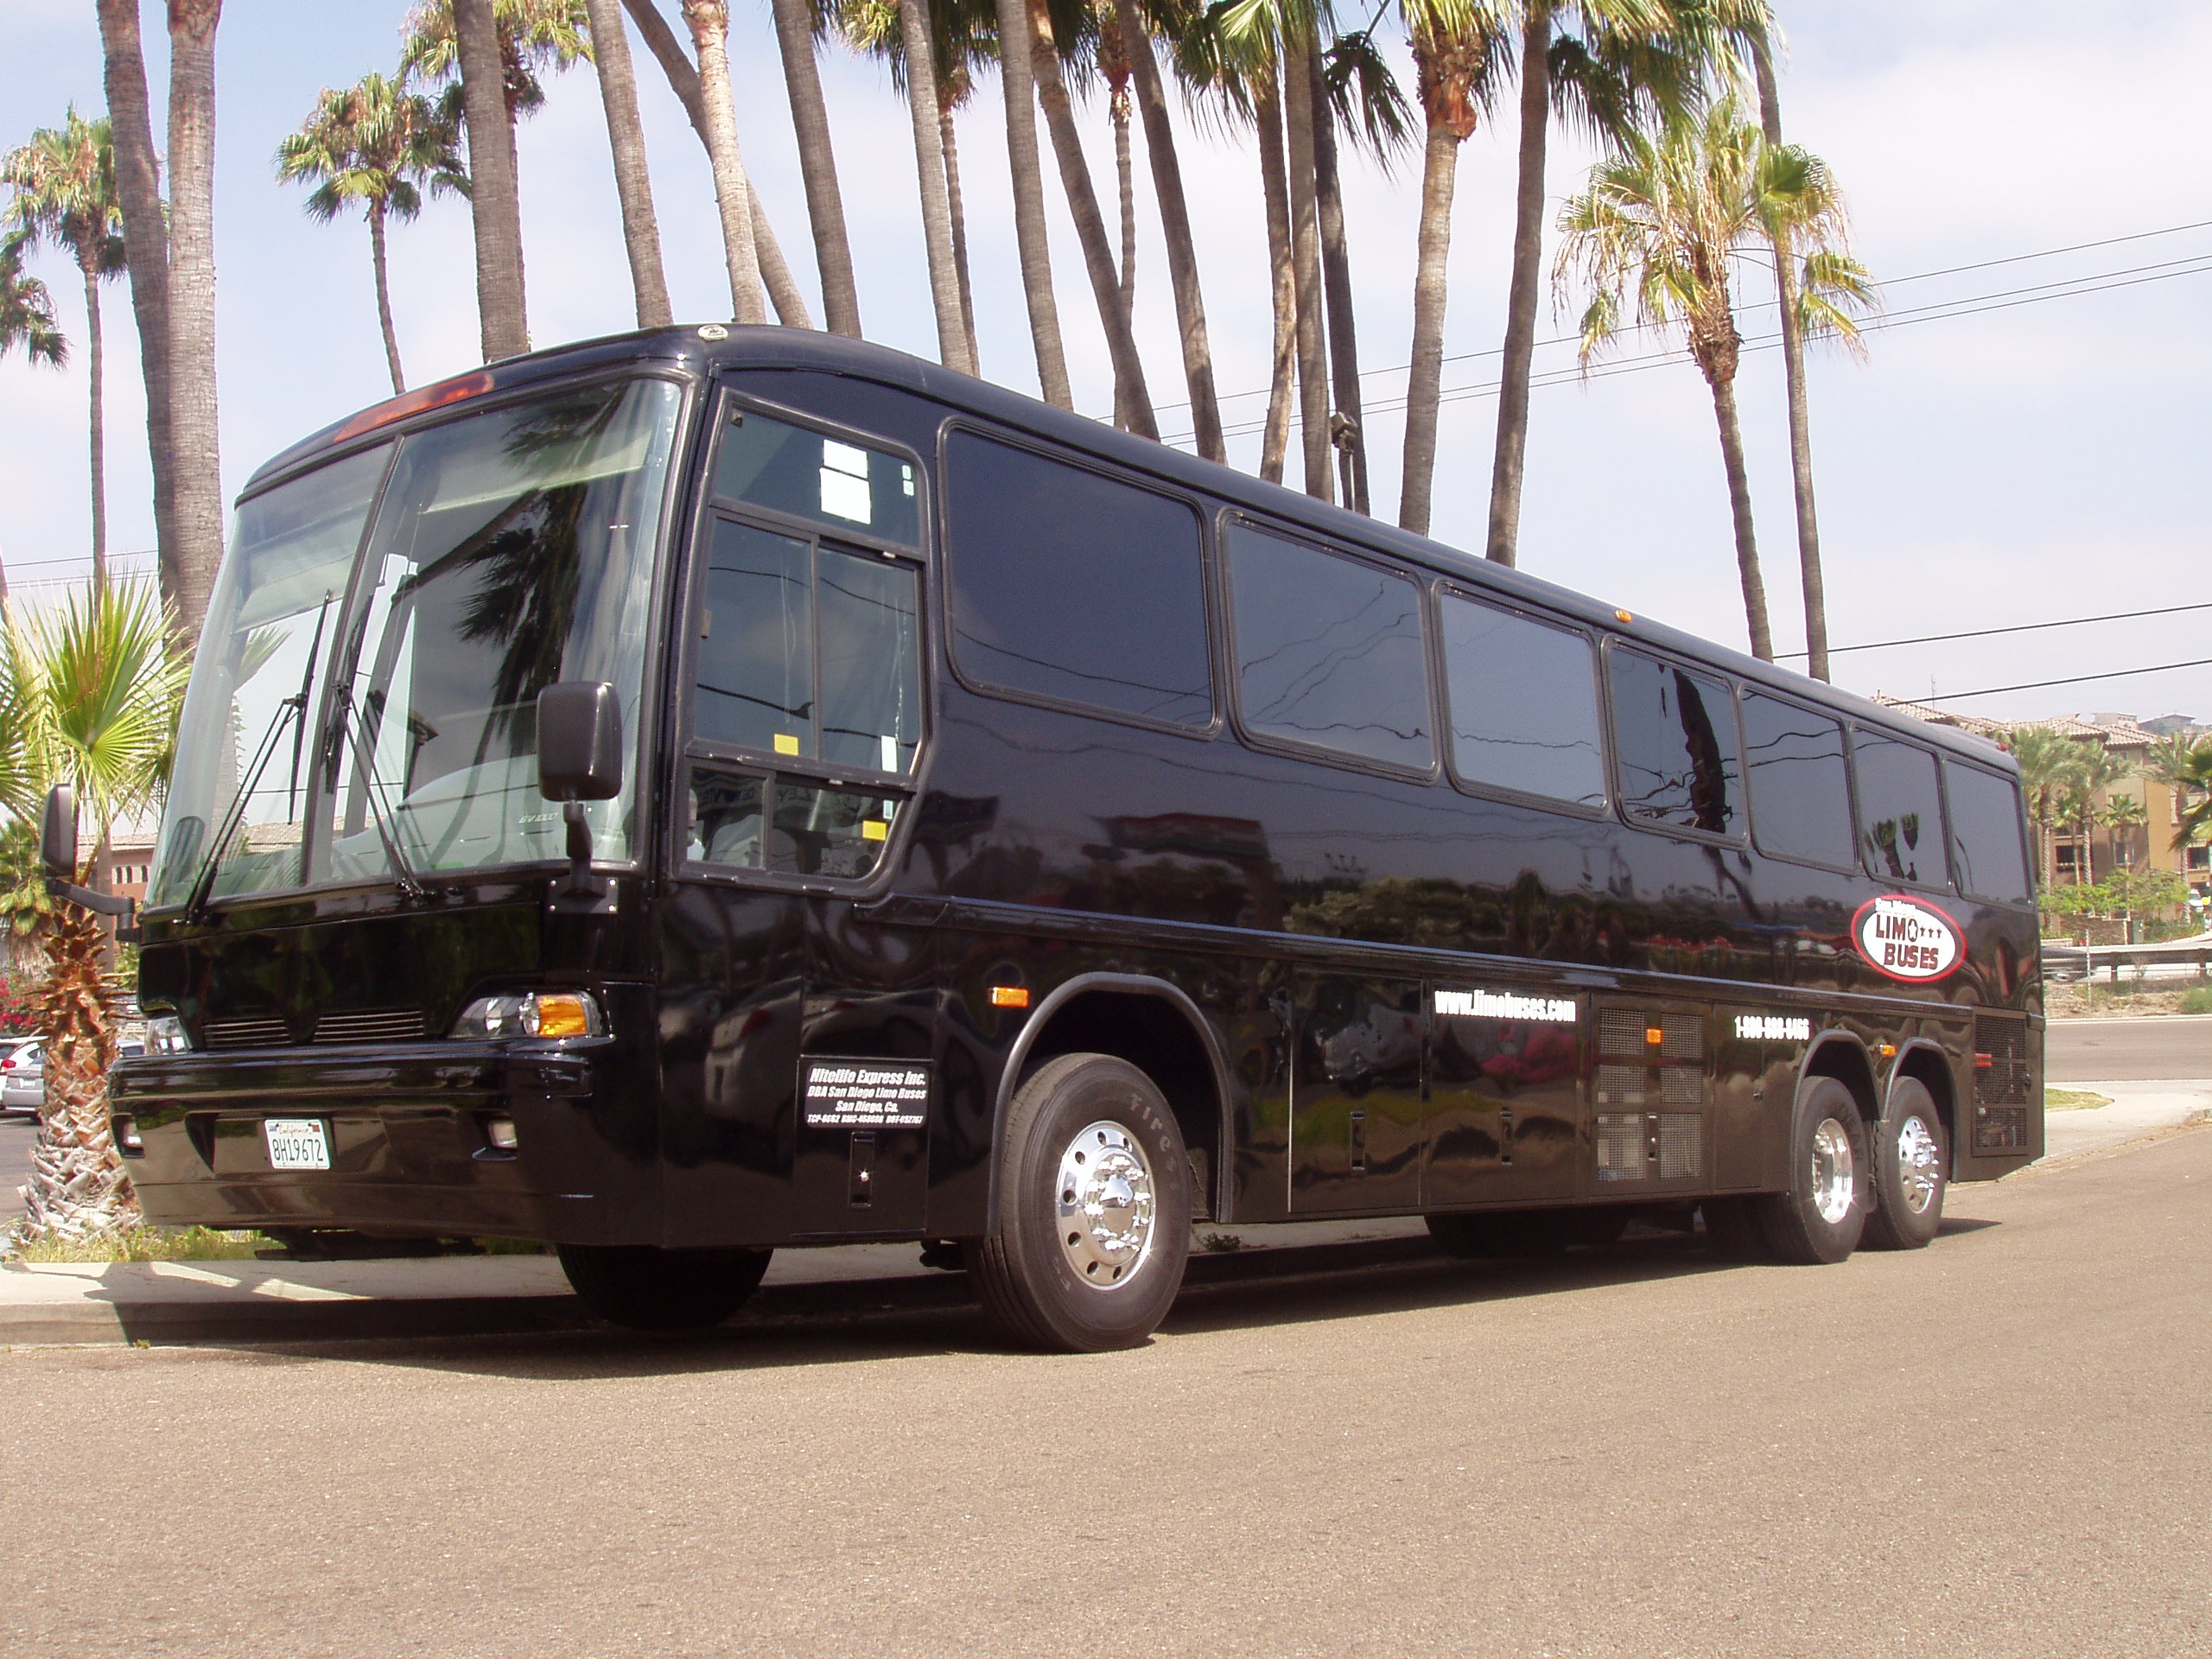 Luxury Liner Limobus for sale in San Diego